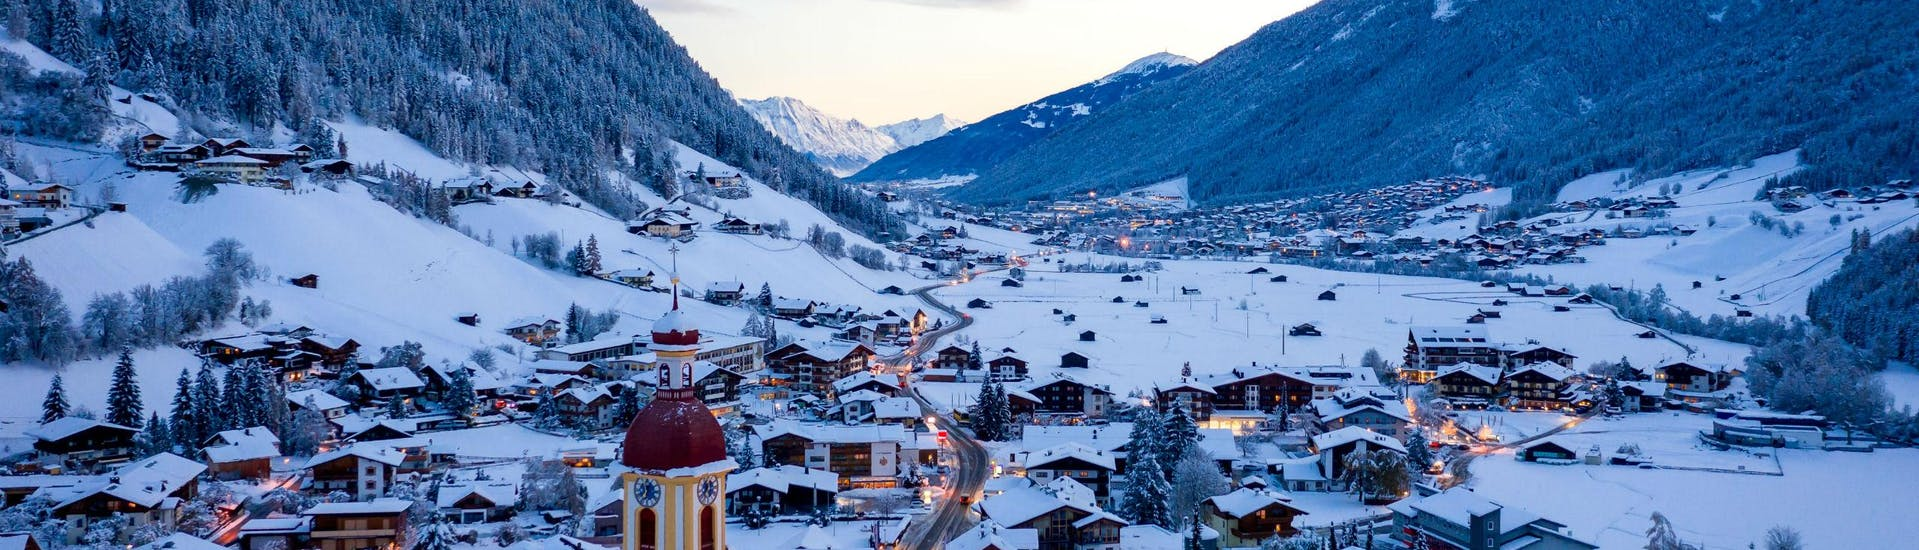 An image of the the tyrolean village of Neustift in the Stubai Valley, where local ski schools offer ski lessons to those who want to learn to ski.